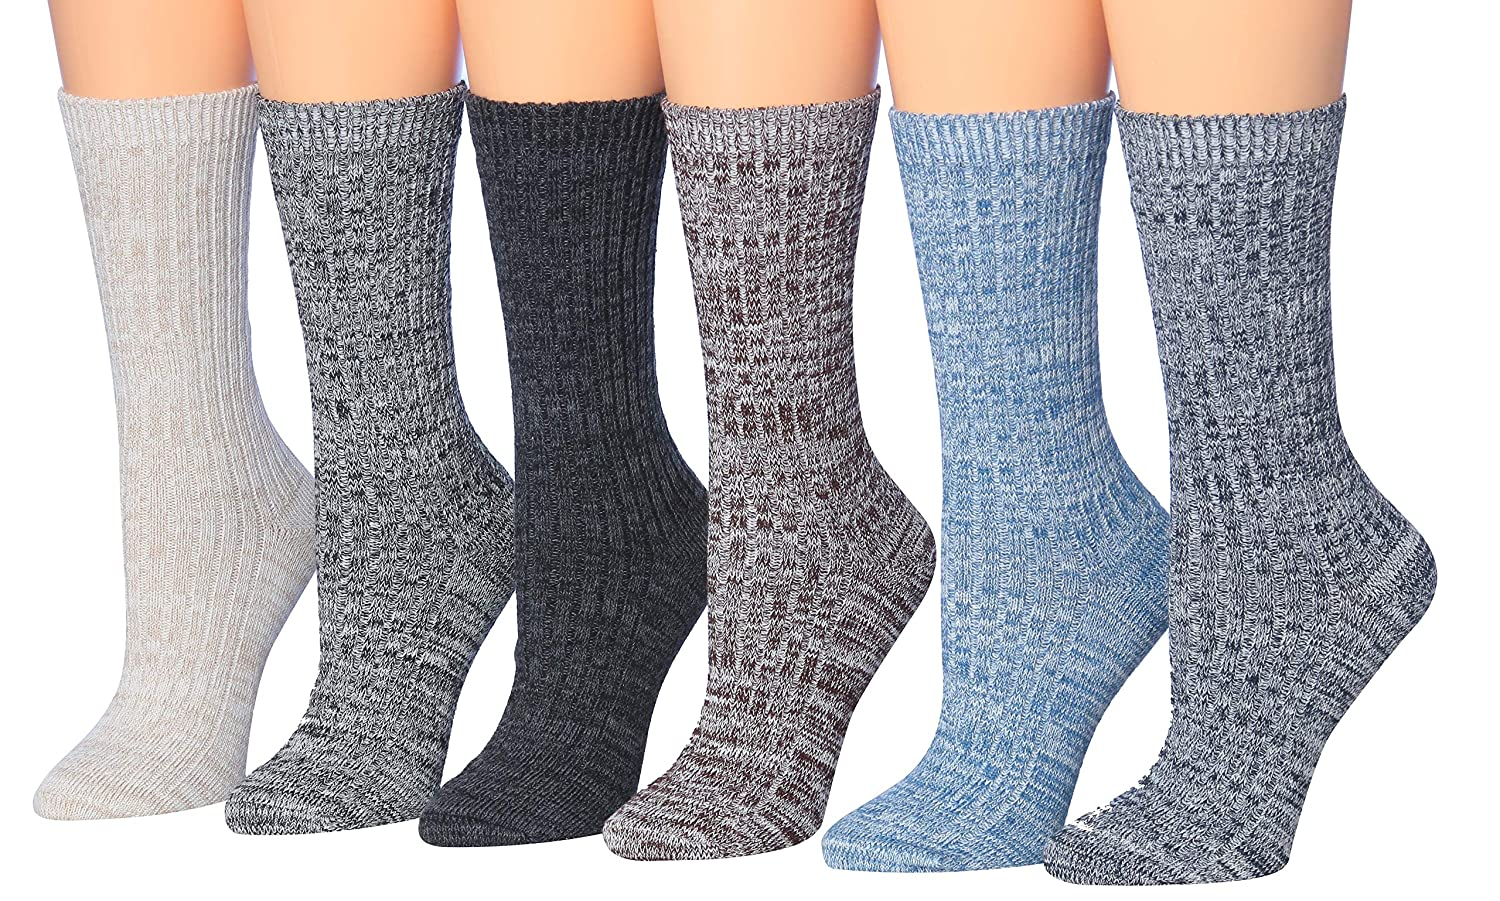 4d7cd6100c Tipi Toe Women's 6-Pack Ragg Cotton Crew Boot Socks, Size 9-11 Fits ...